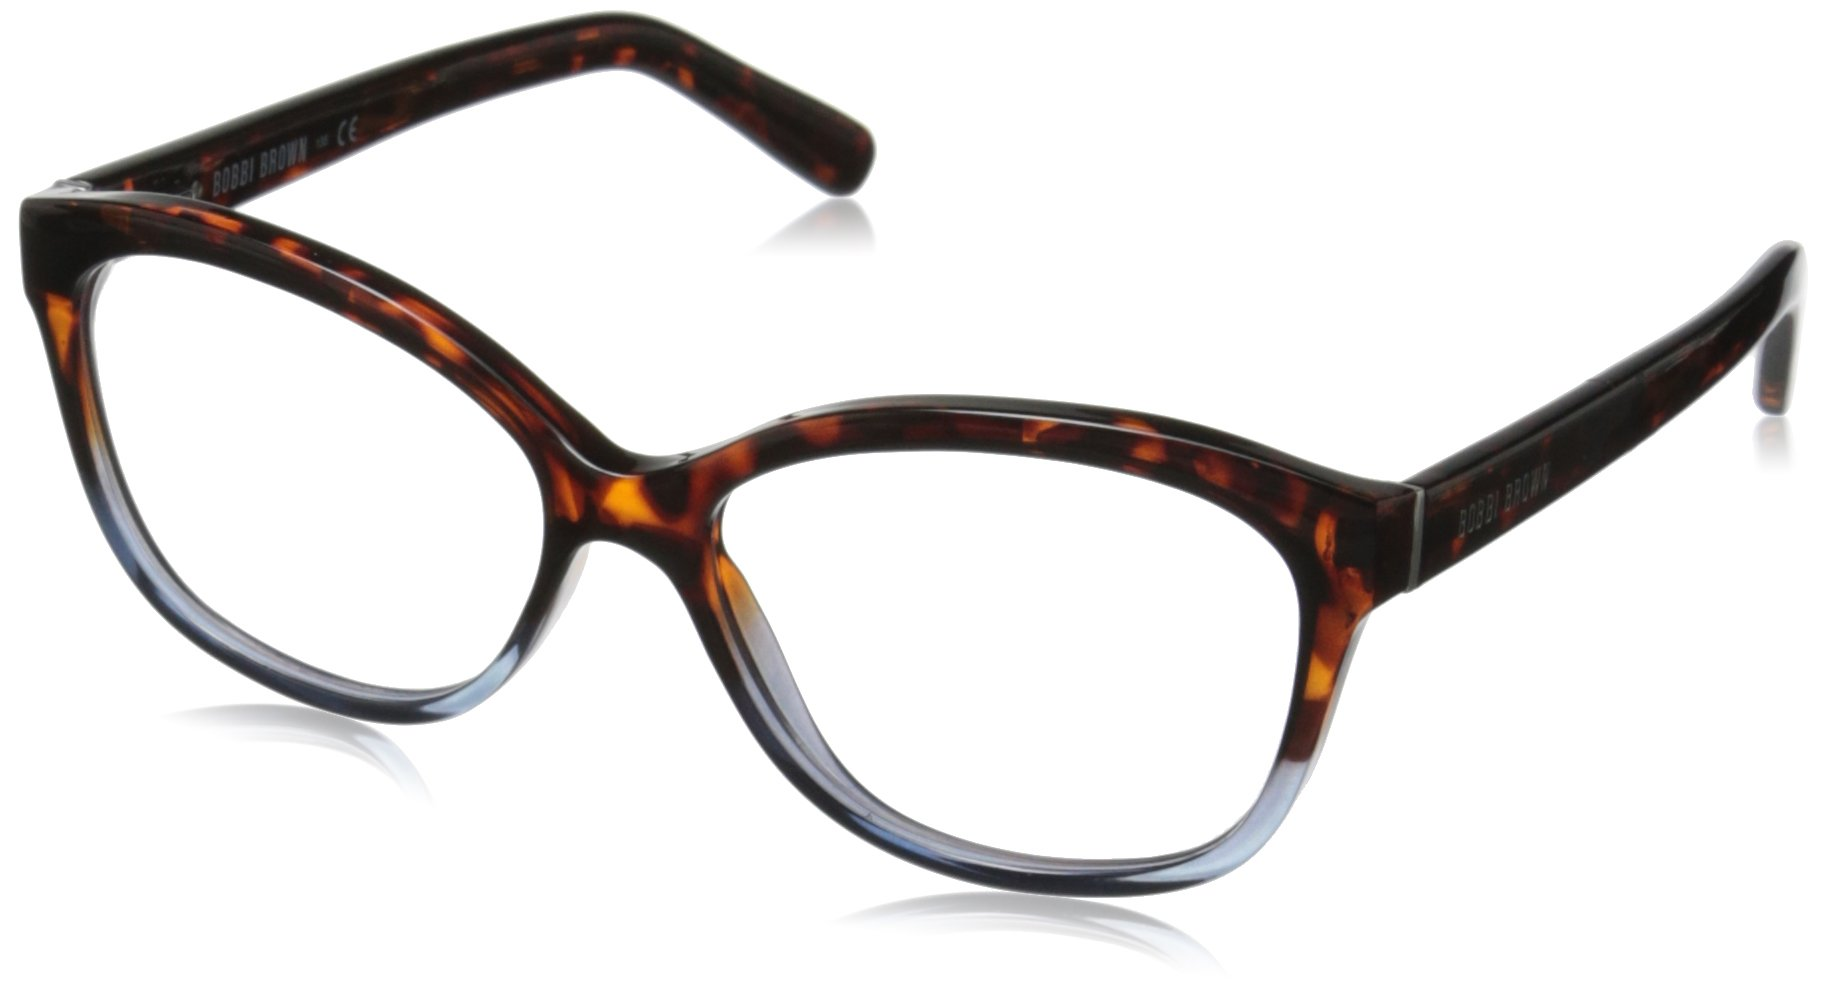 Bobbi Brown Women's The Mulberry Square Readers, Tortoise Blue Crystal 1.5, 54 mm